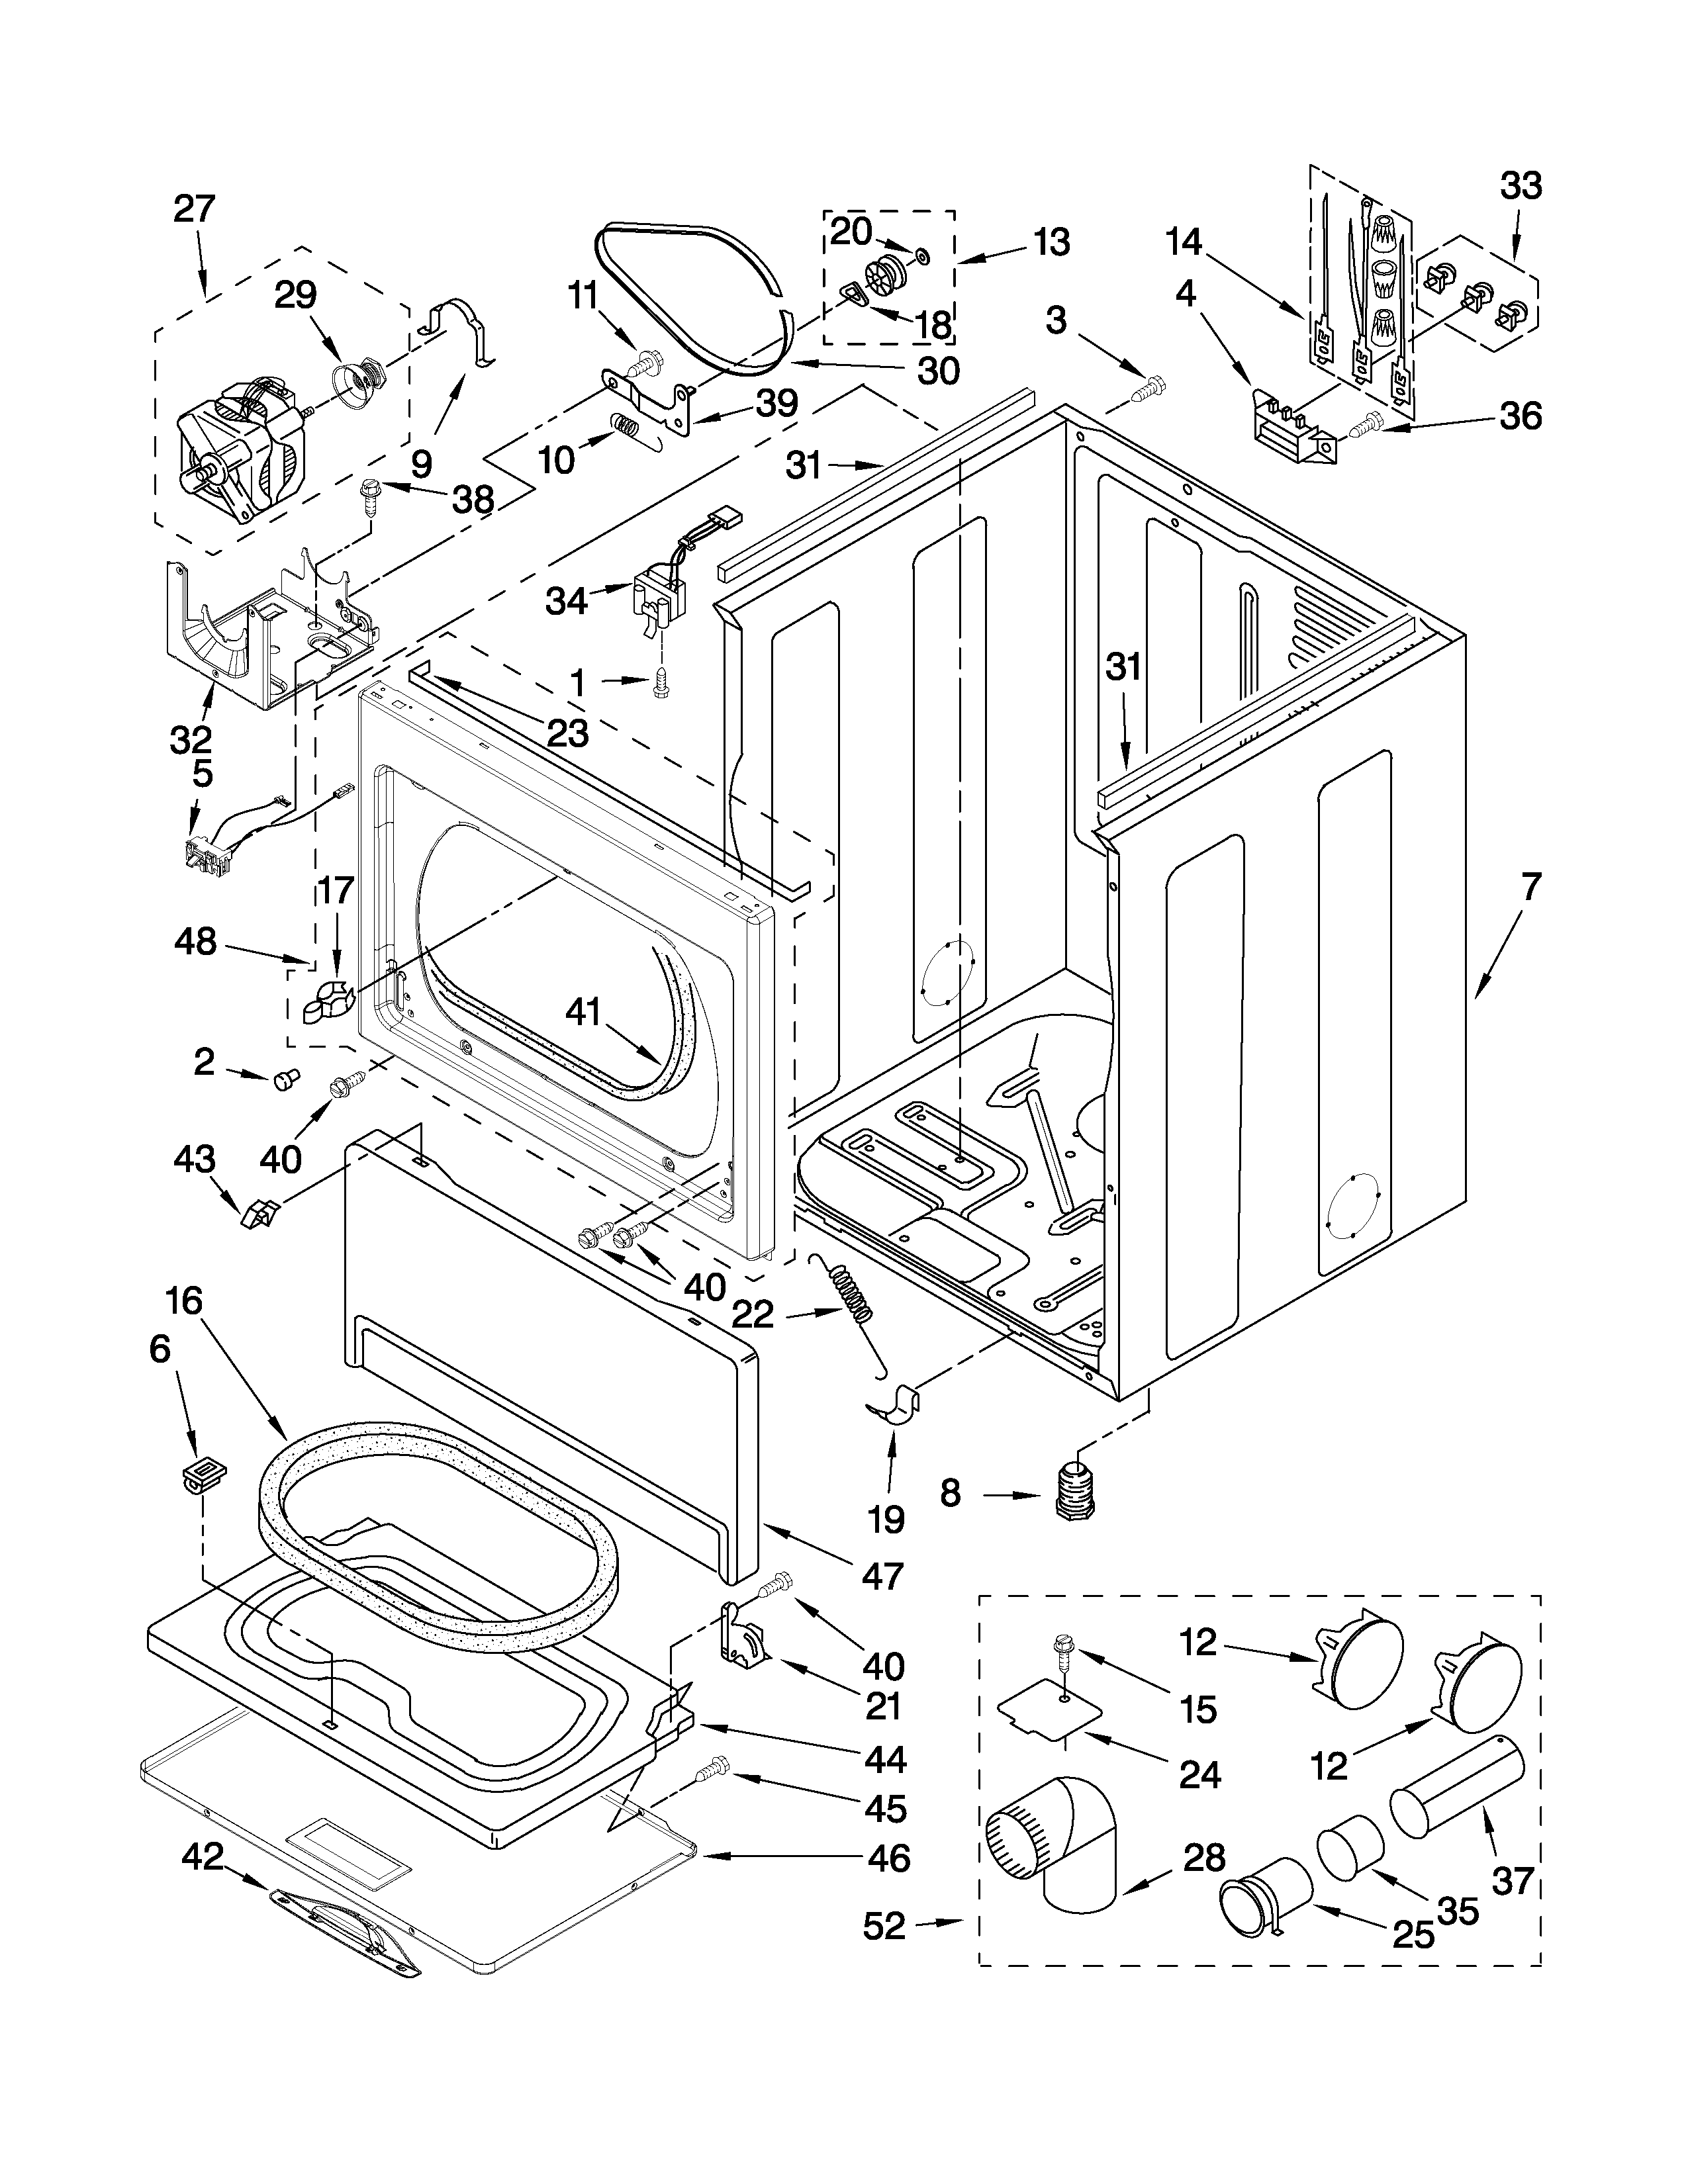 CABINET PARTS Diagram & Parts List for Model wed5600xw0